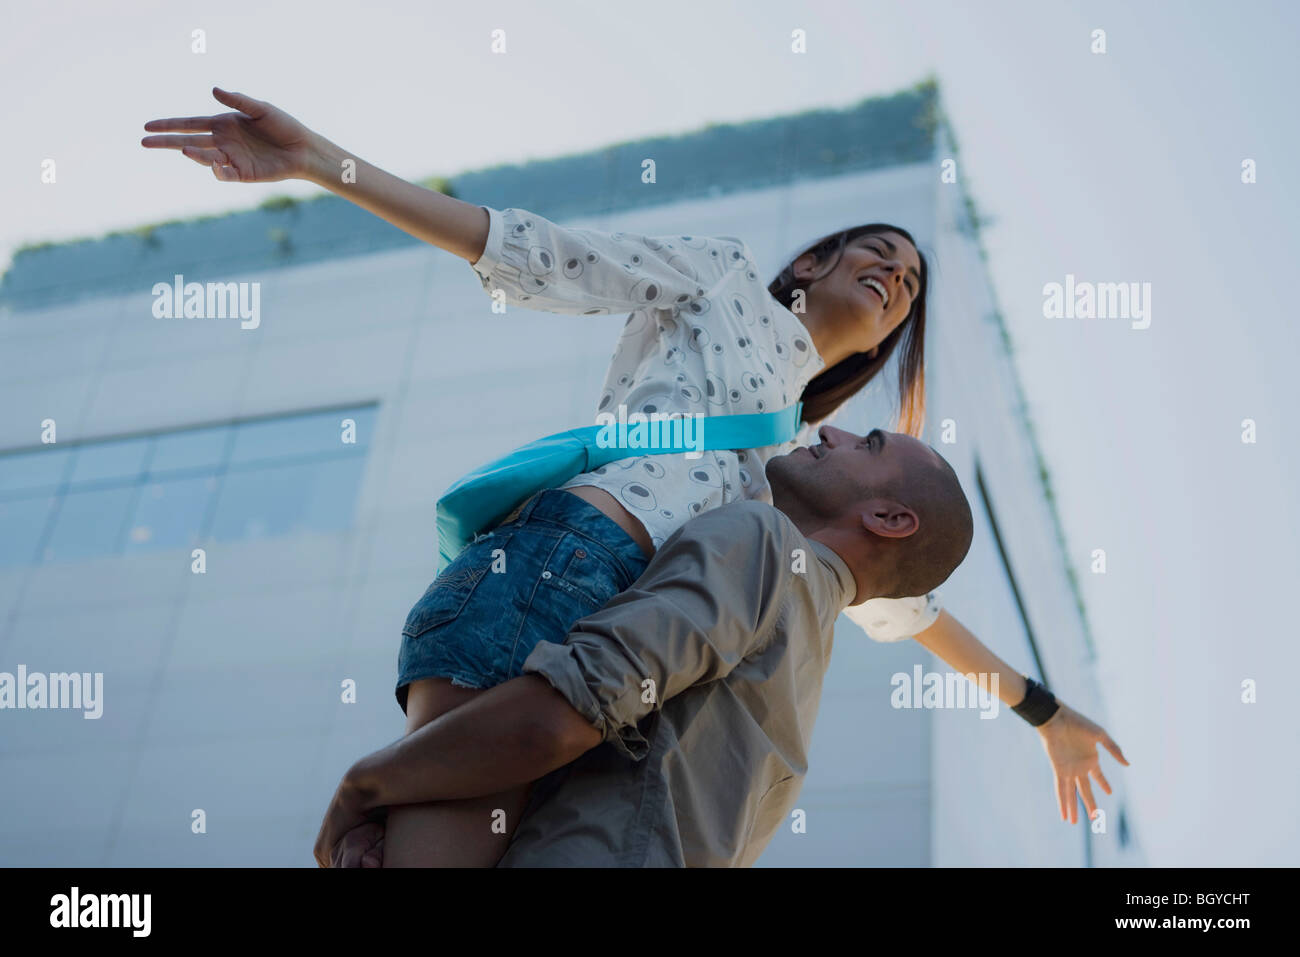 Man lifting woman in air, woman's arms outstretched - Stock Image